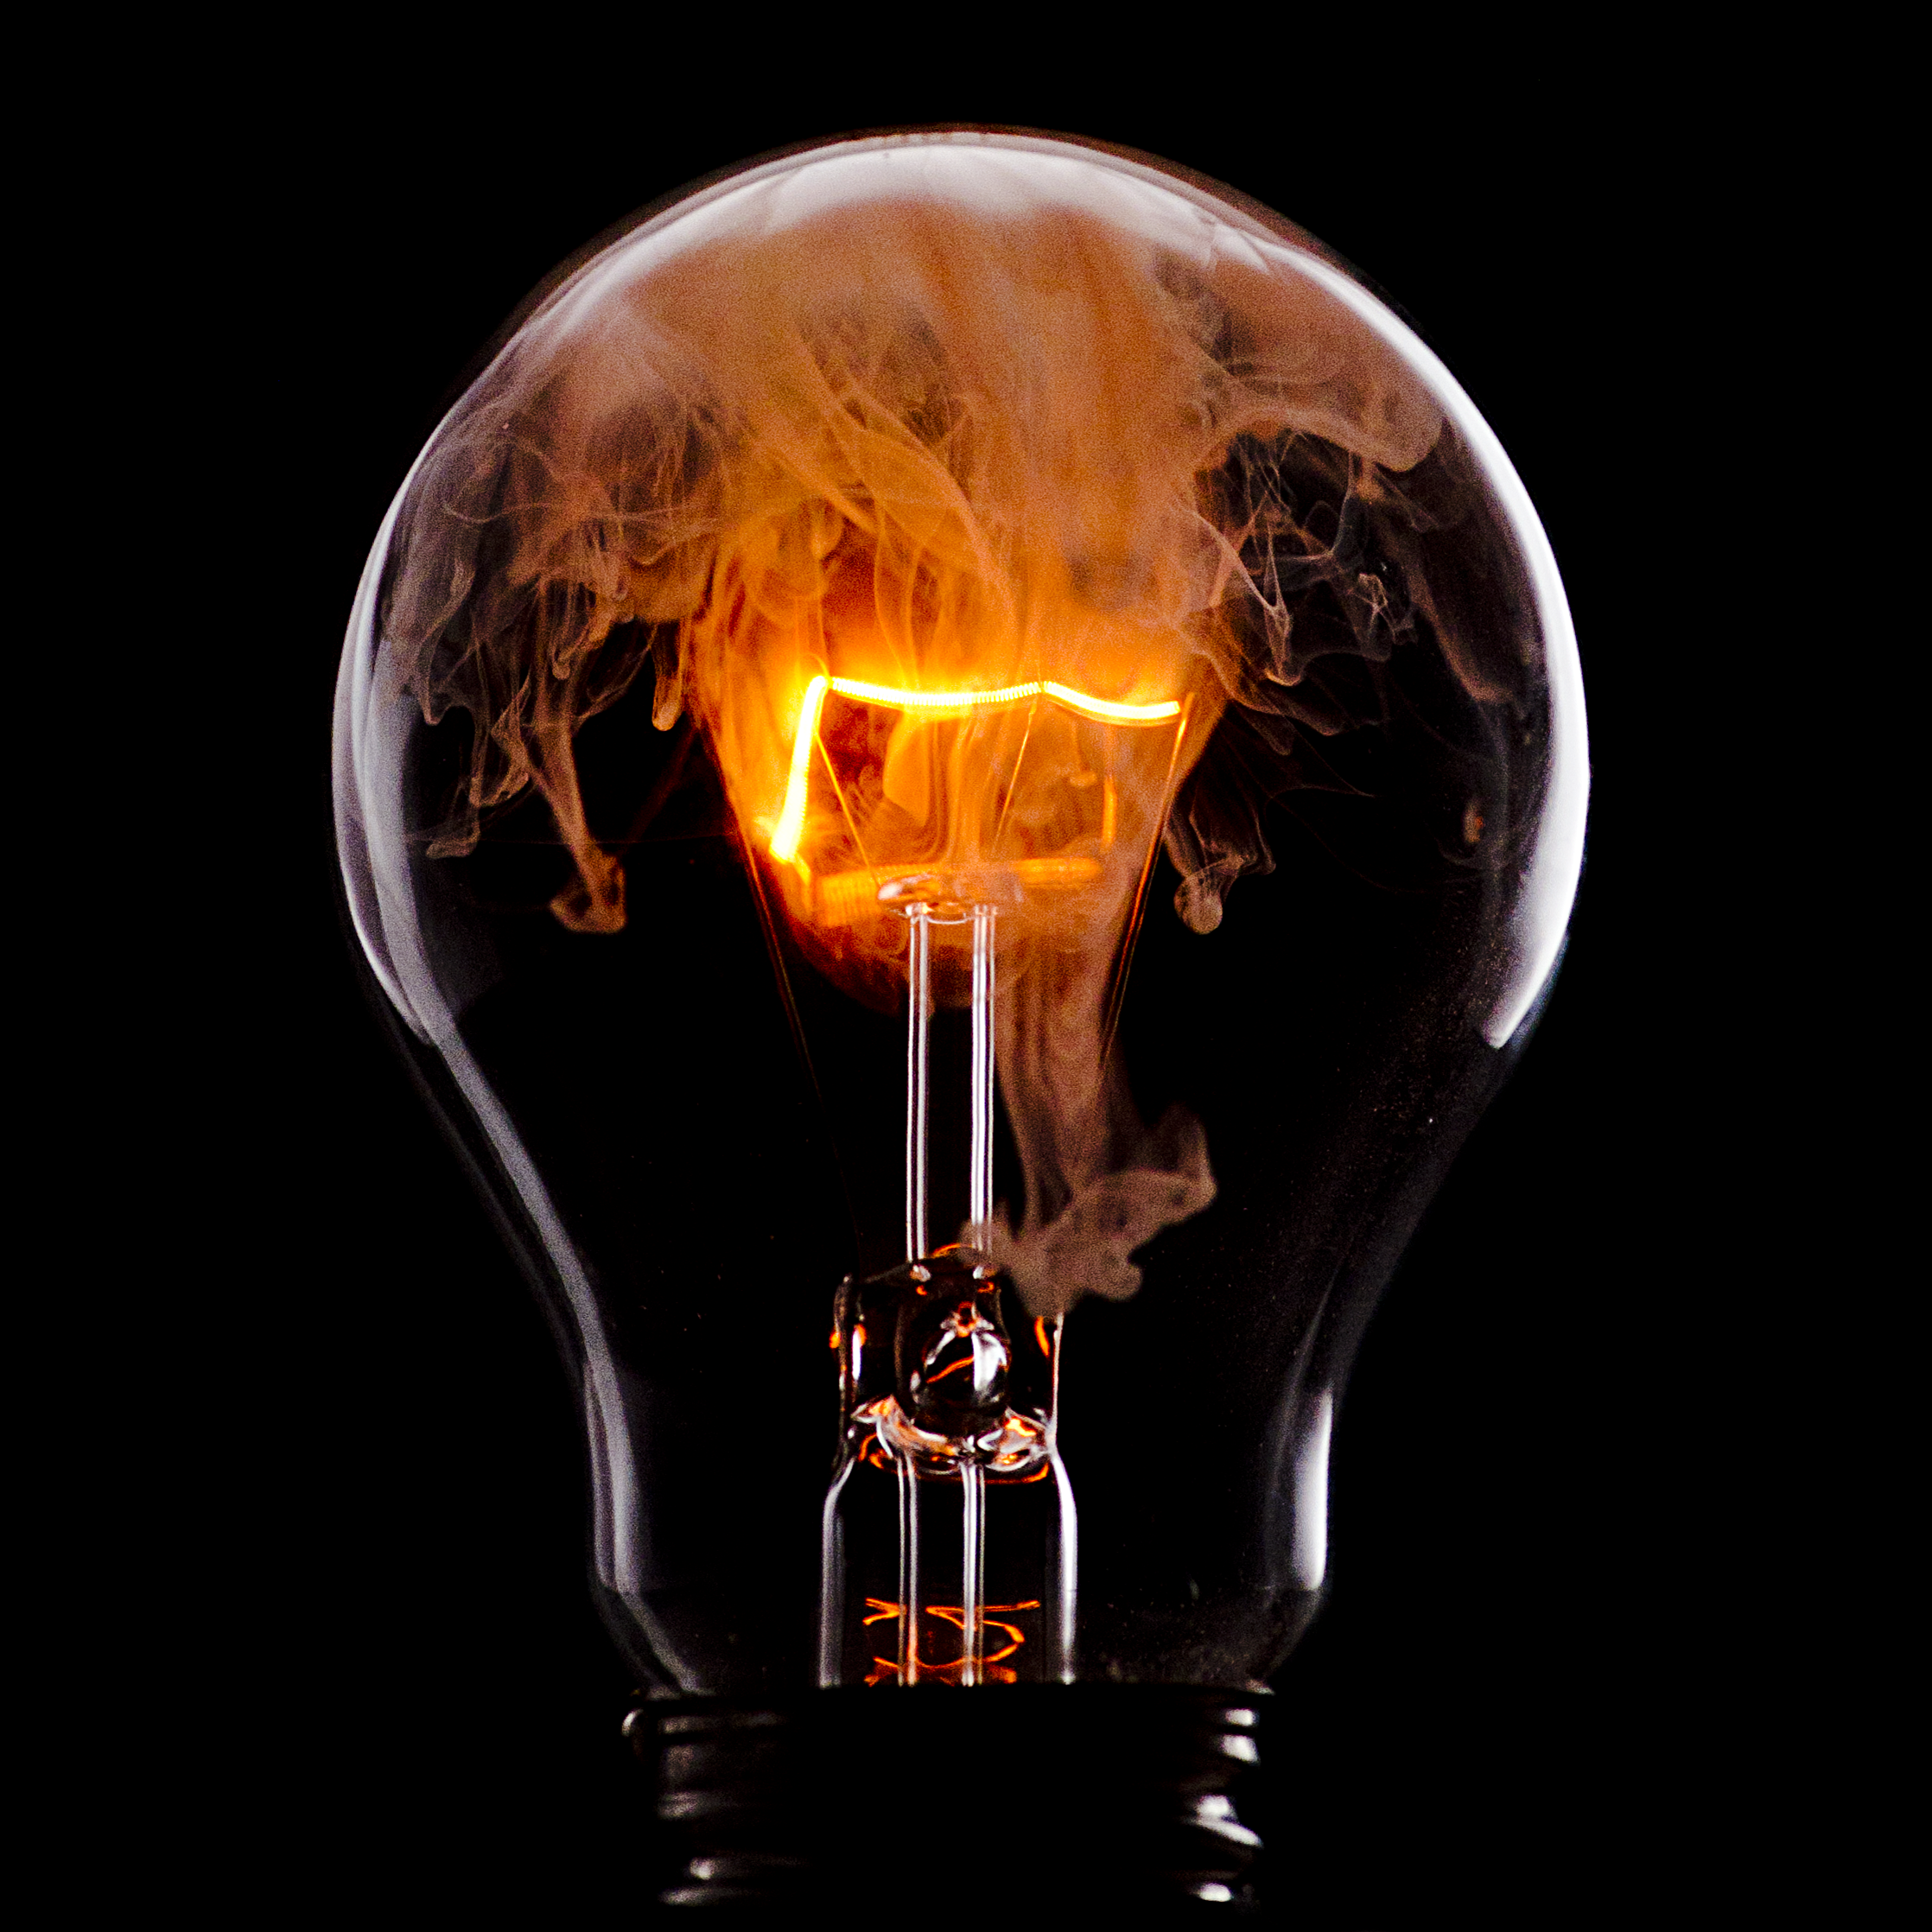 Incandescent Light Bulb - Science Notes and Projects